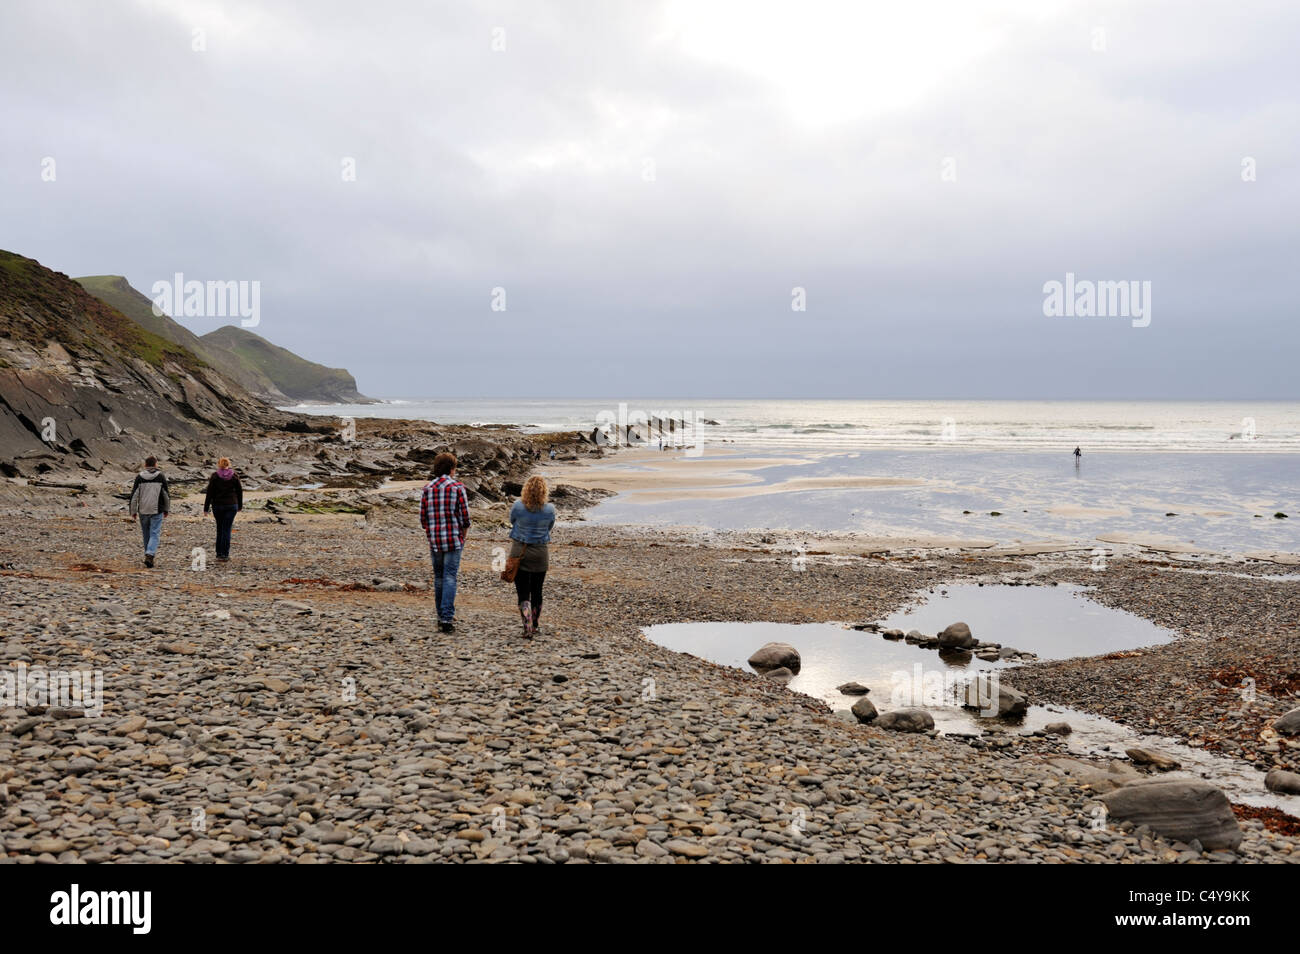 Overcast day on Northcott Mouth pebble beach in Cornwall - Stock Image